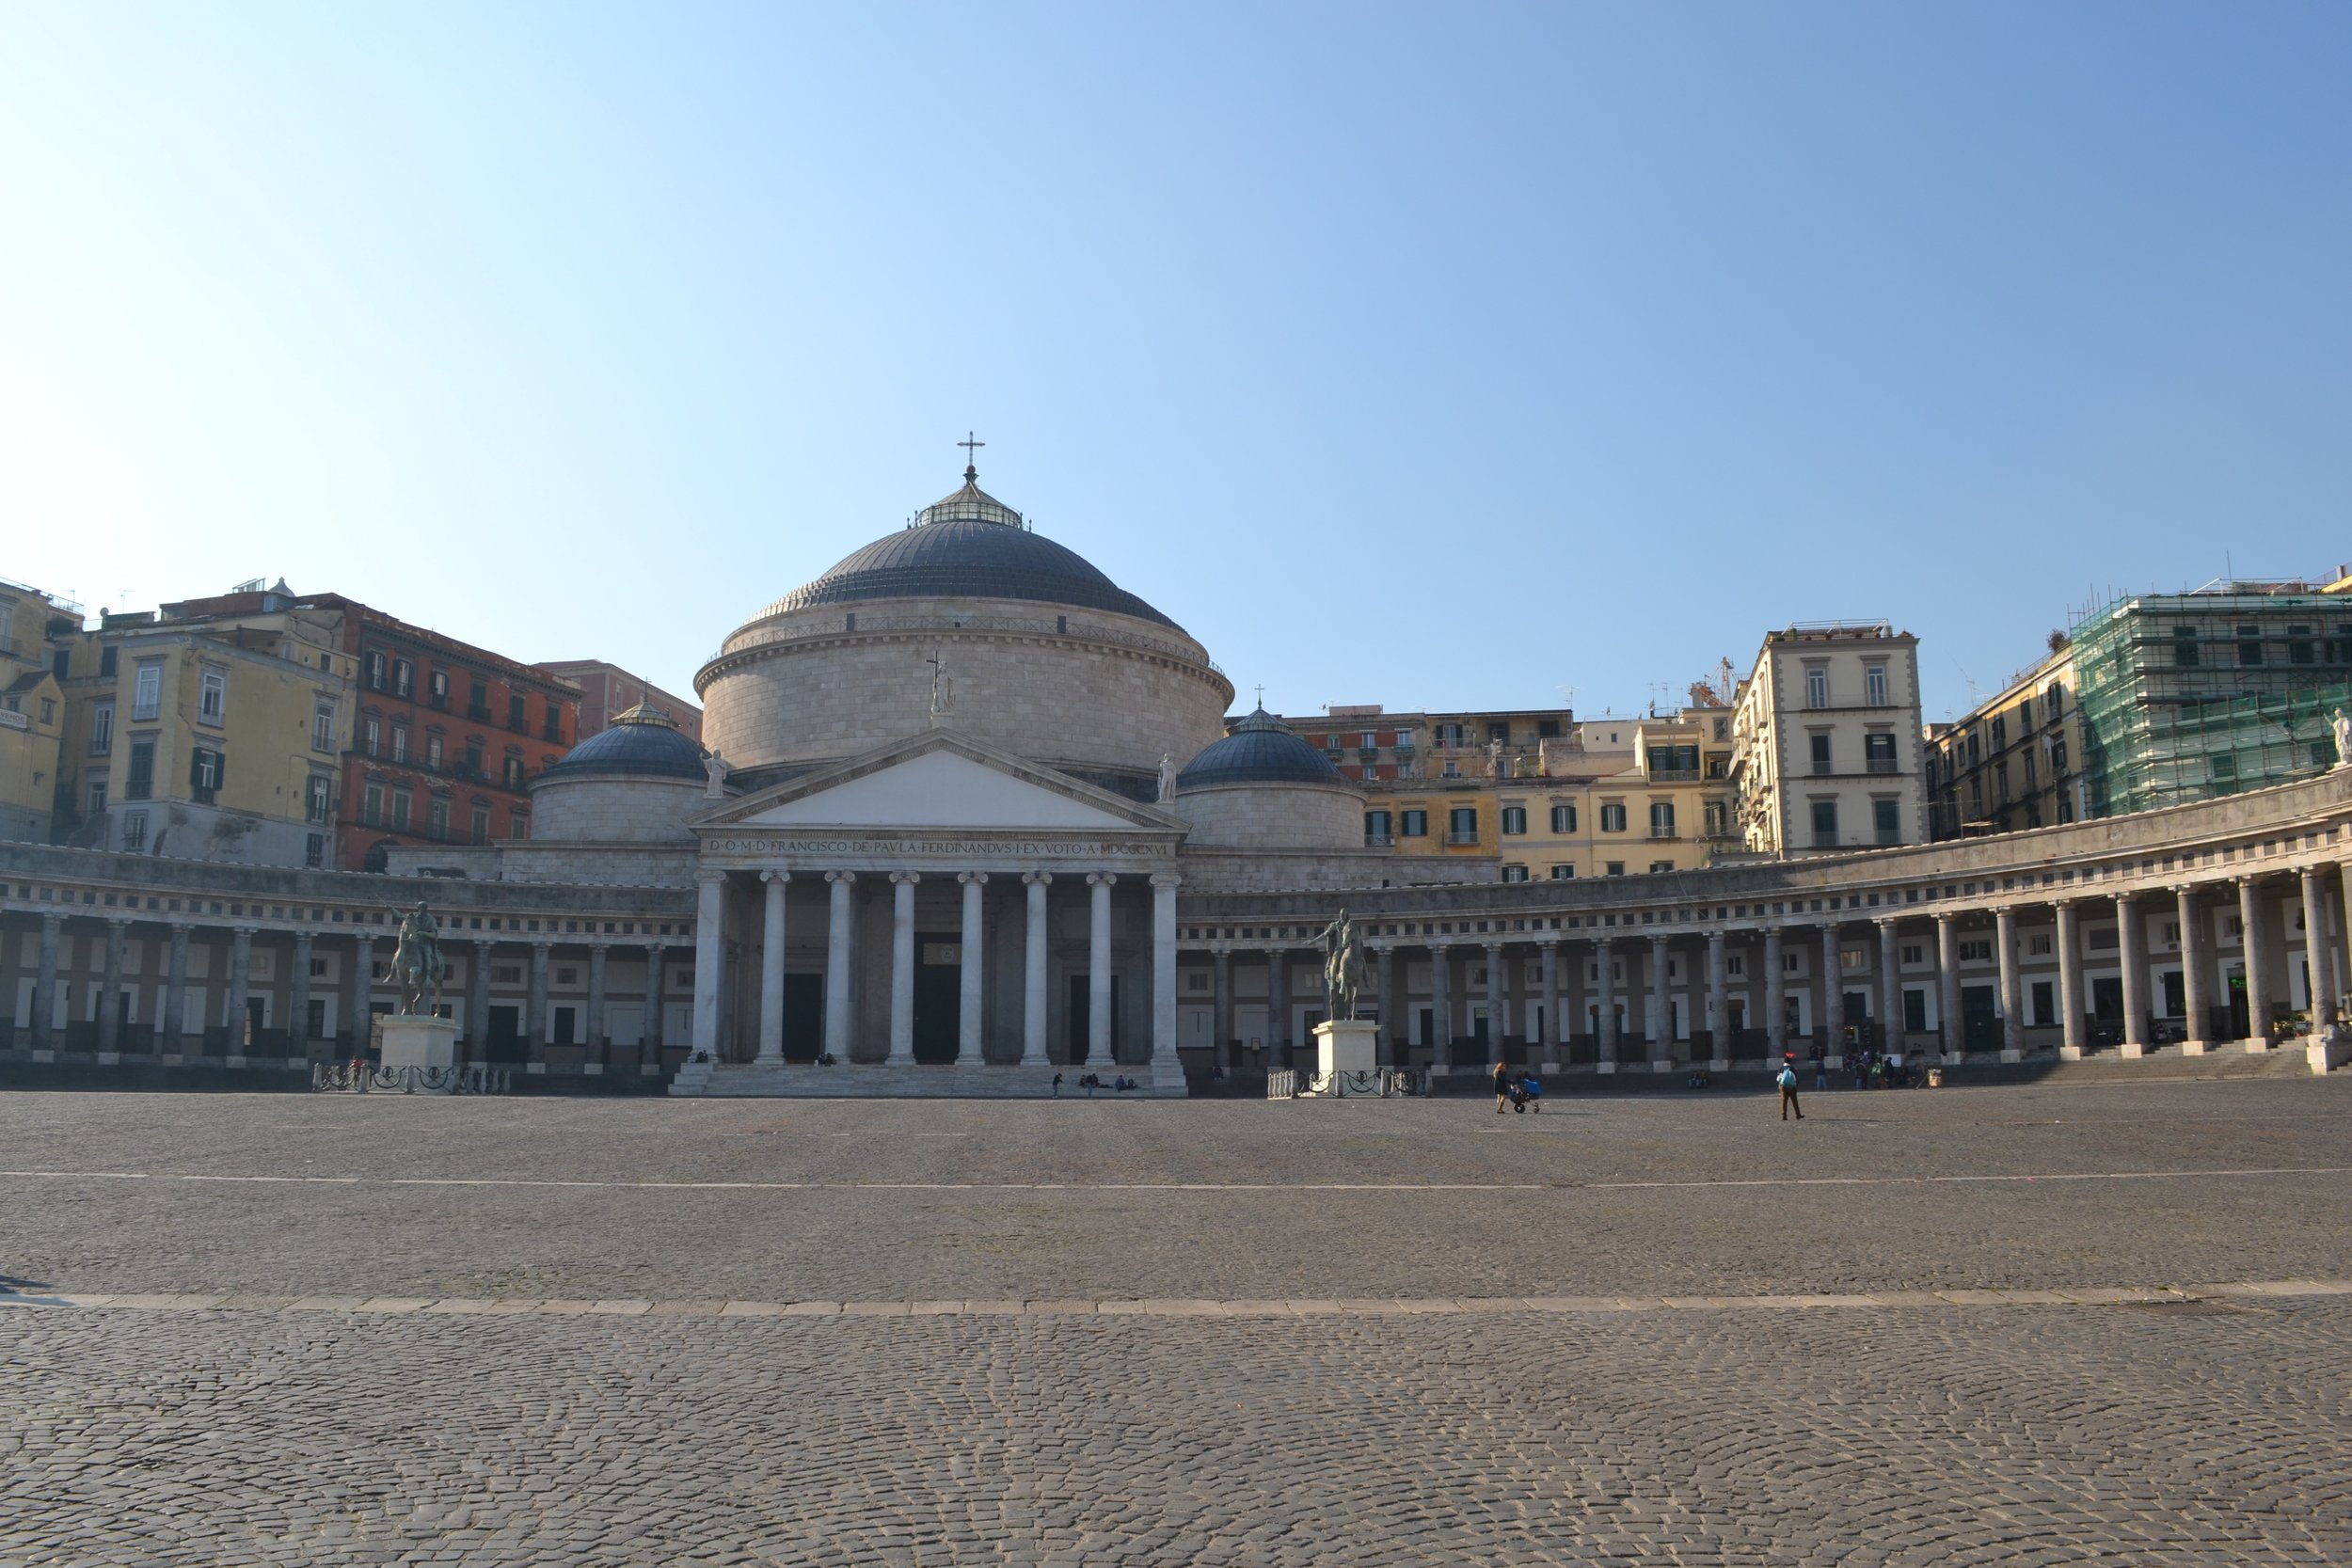 The Church of San Francesco di Paola in Piazza del Plebiscito